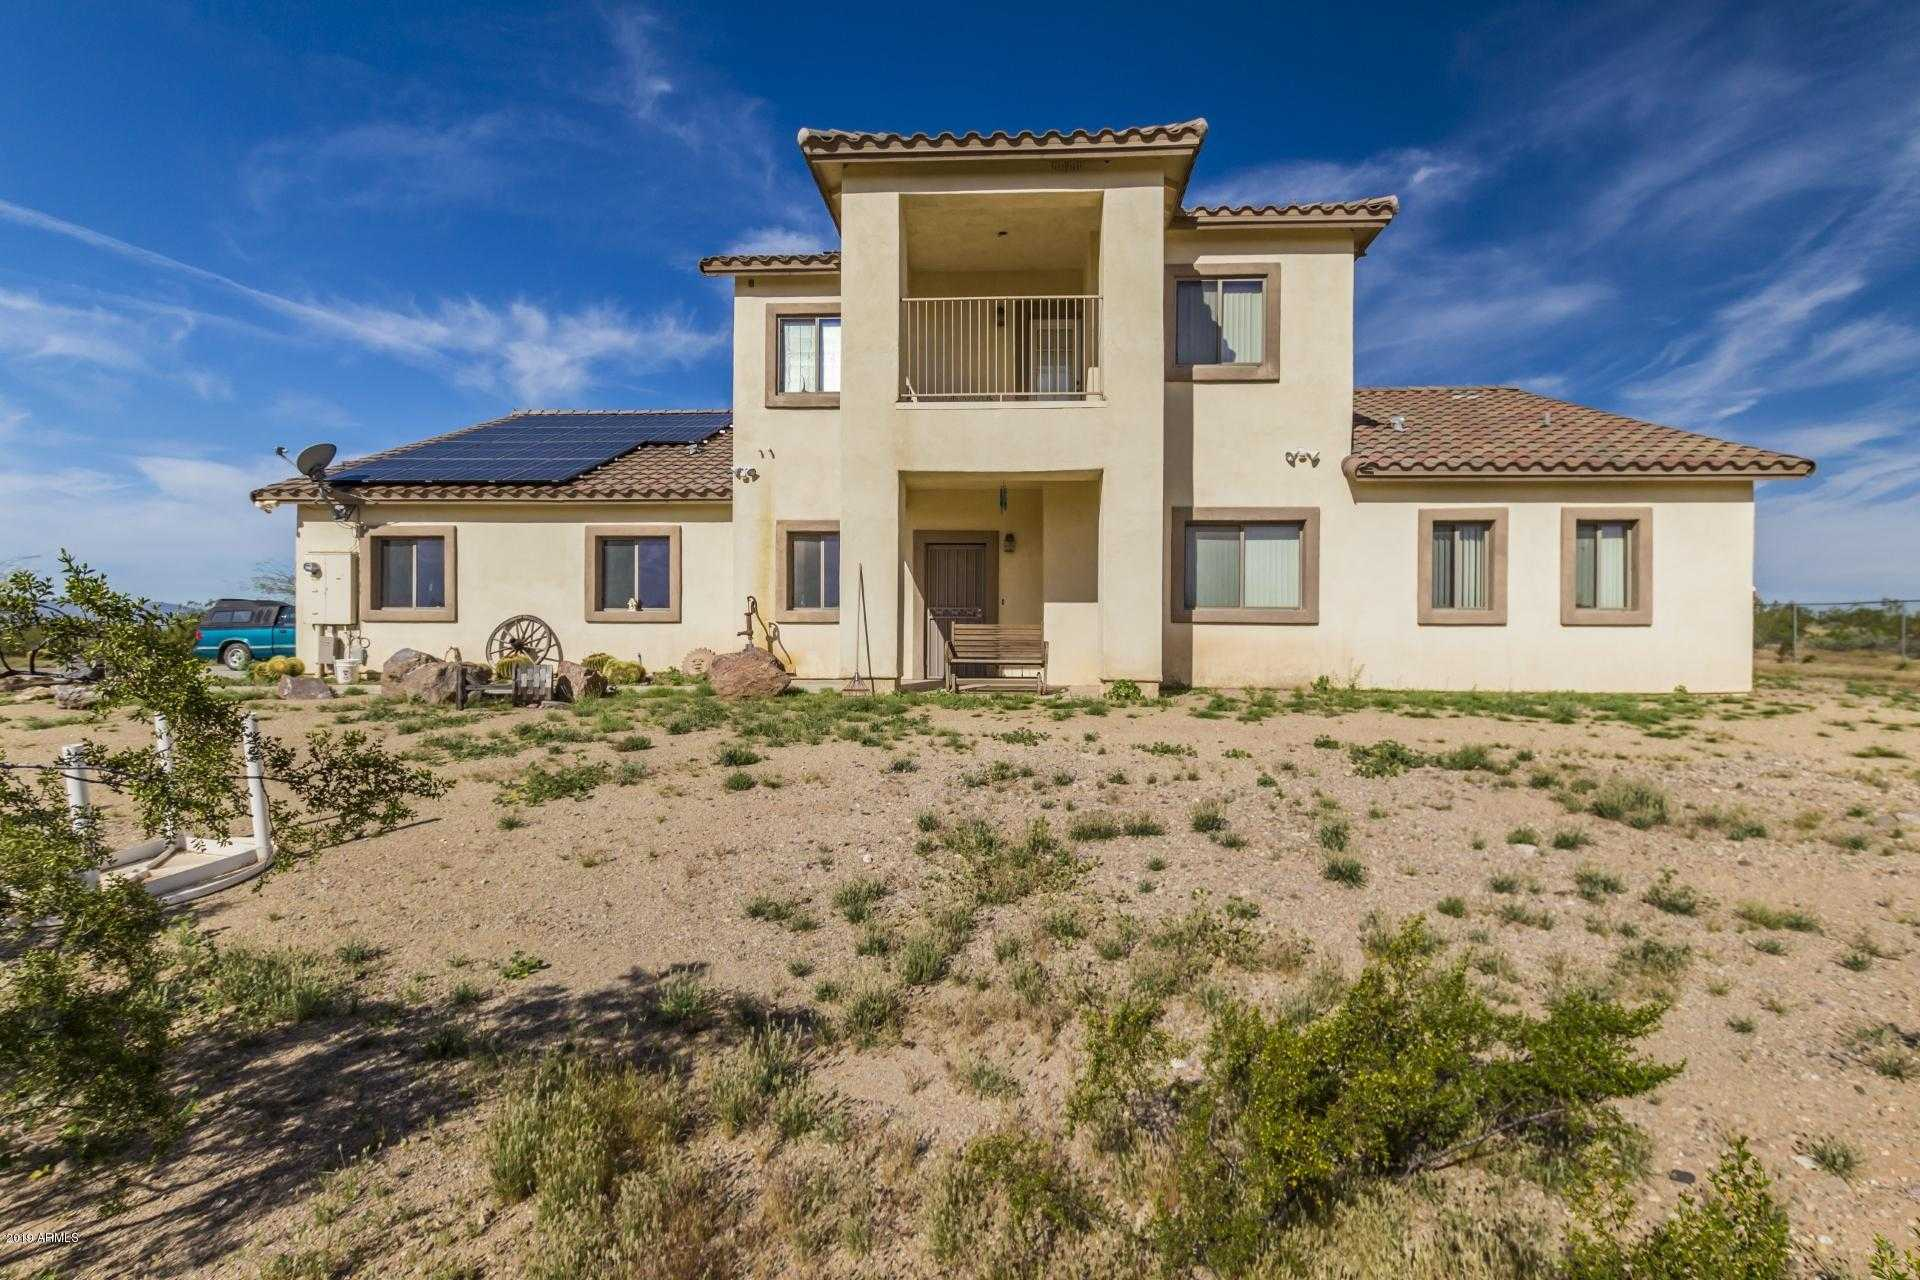 $500,000 - 5Br/5Ba - Home for Sale in N/a, Surprise